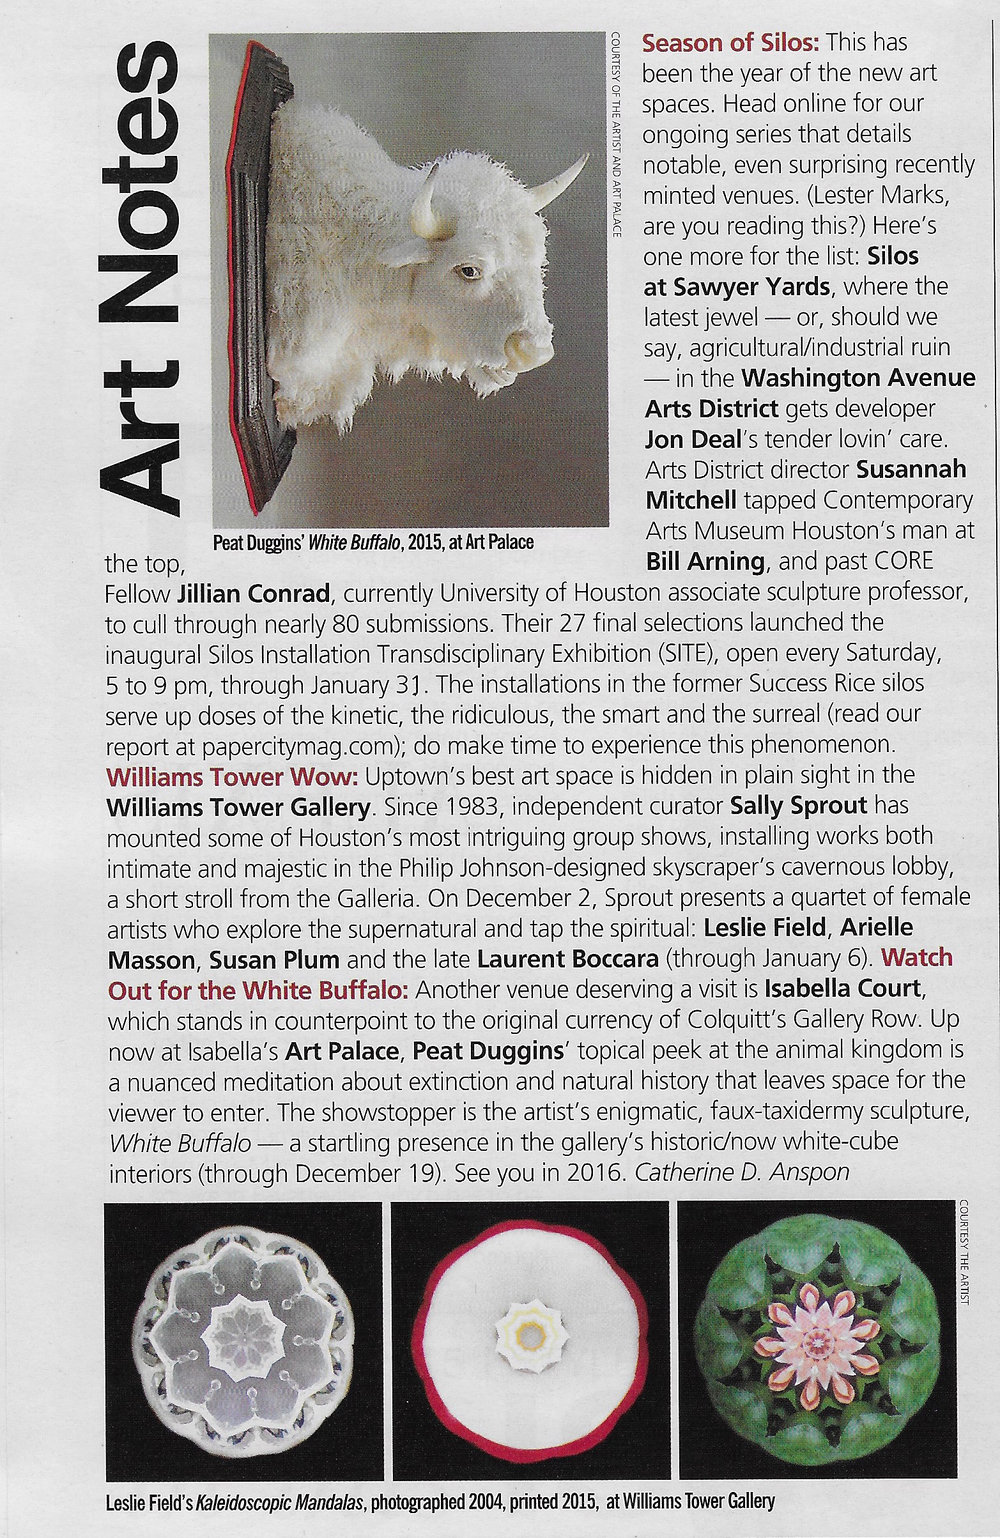 Art Notes, PaperCity   - December 2015. Williams Tower Wow: Uptown's best art space is hidden in plain sight in the Williams Tower Gallery.  Since 1983, independent curator Sally Sprout has mounted some of Houston's most intriguing group shows, installing works both intimate and majestic in the Philip Johnson-designed skyscraper's cavernous lobby, a short stroll from the Galleria. On December 2, Sprout presents a quartet of female artists who explore the supernatural and tap the spiritual: Leslie Field, Arielle Masson, Susan Plum, and the late Laurent Boccara.